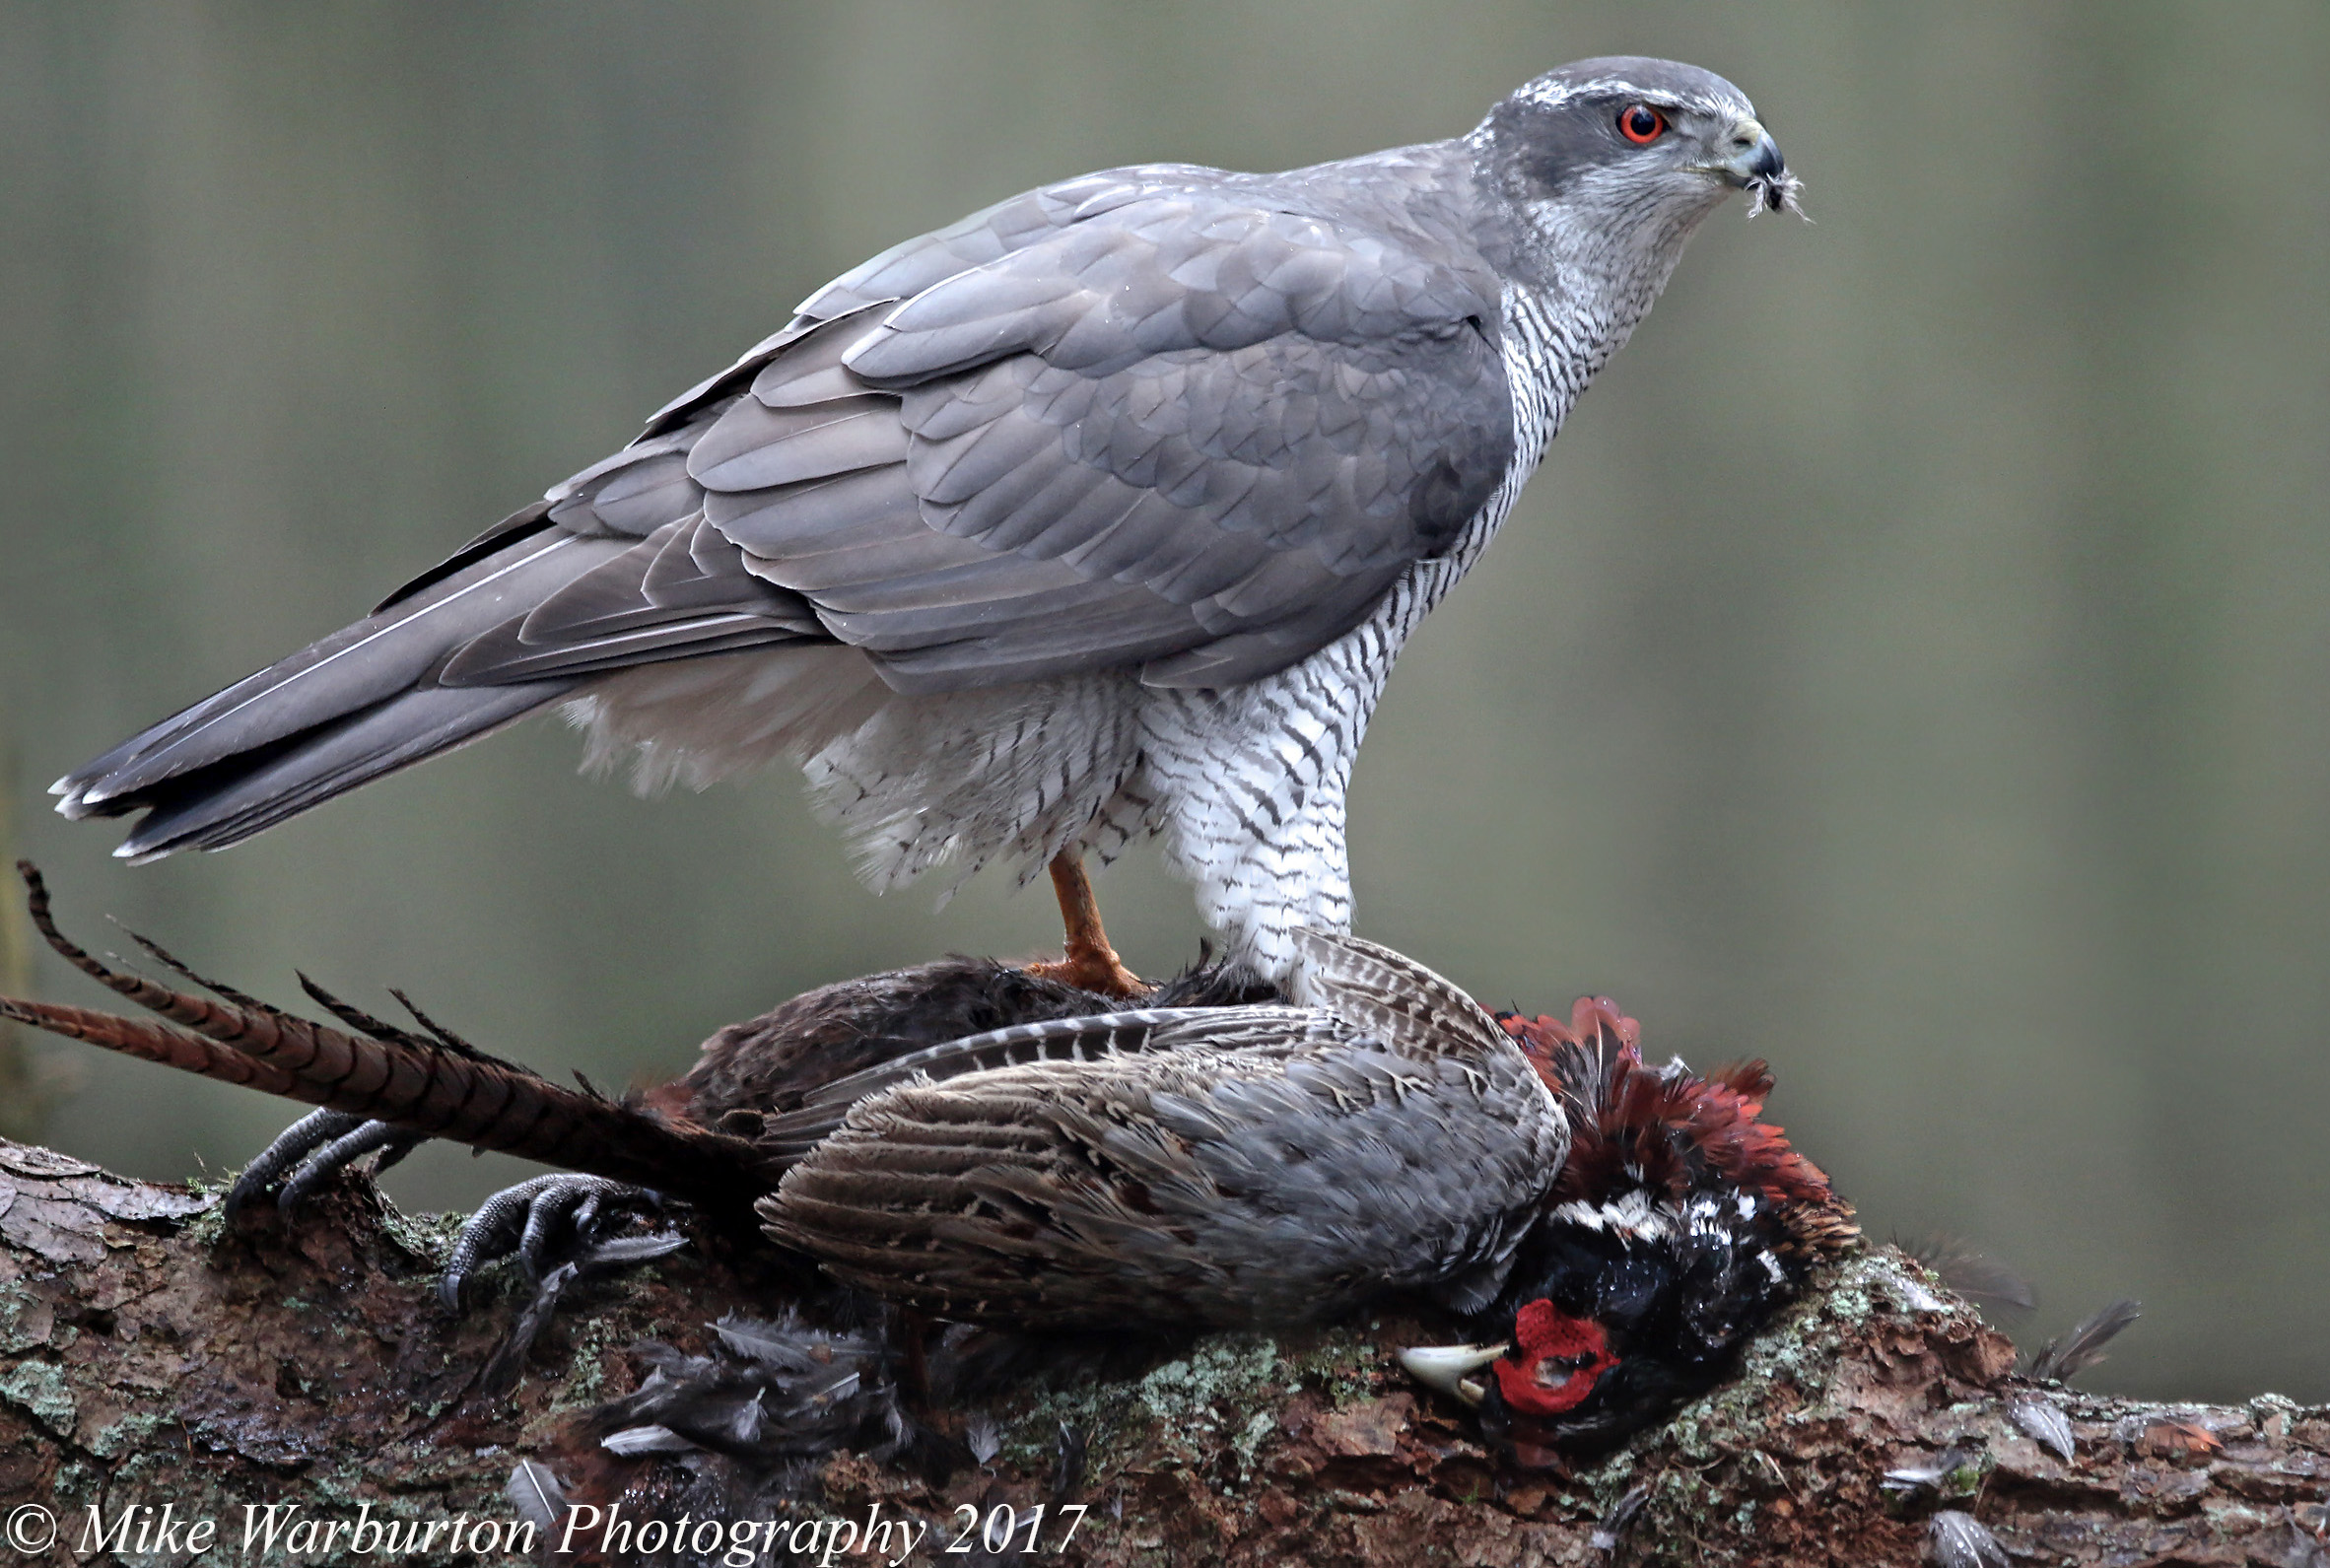 Northern Goshawk, Brecon Beacons, Powys, 22 January 2017 (Photo: Mike Warburton)